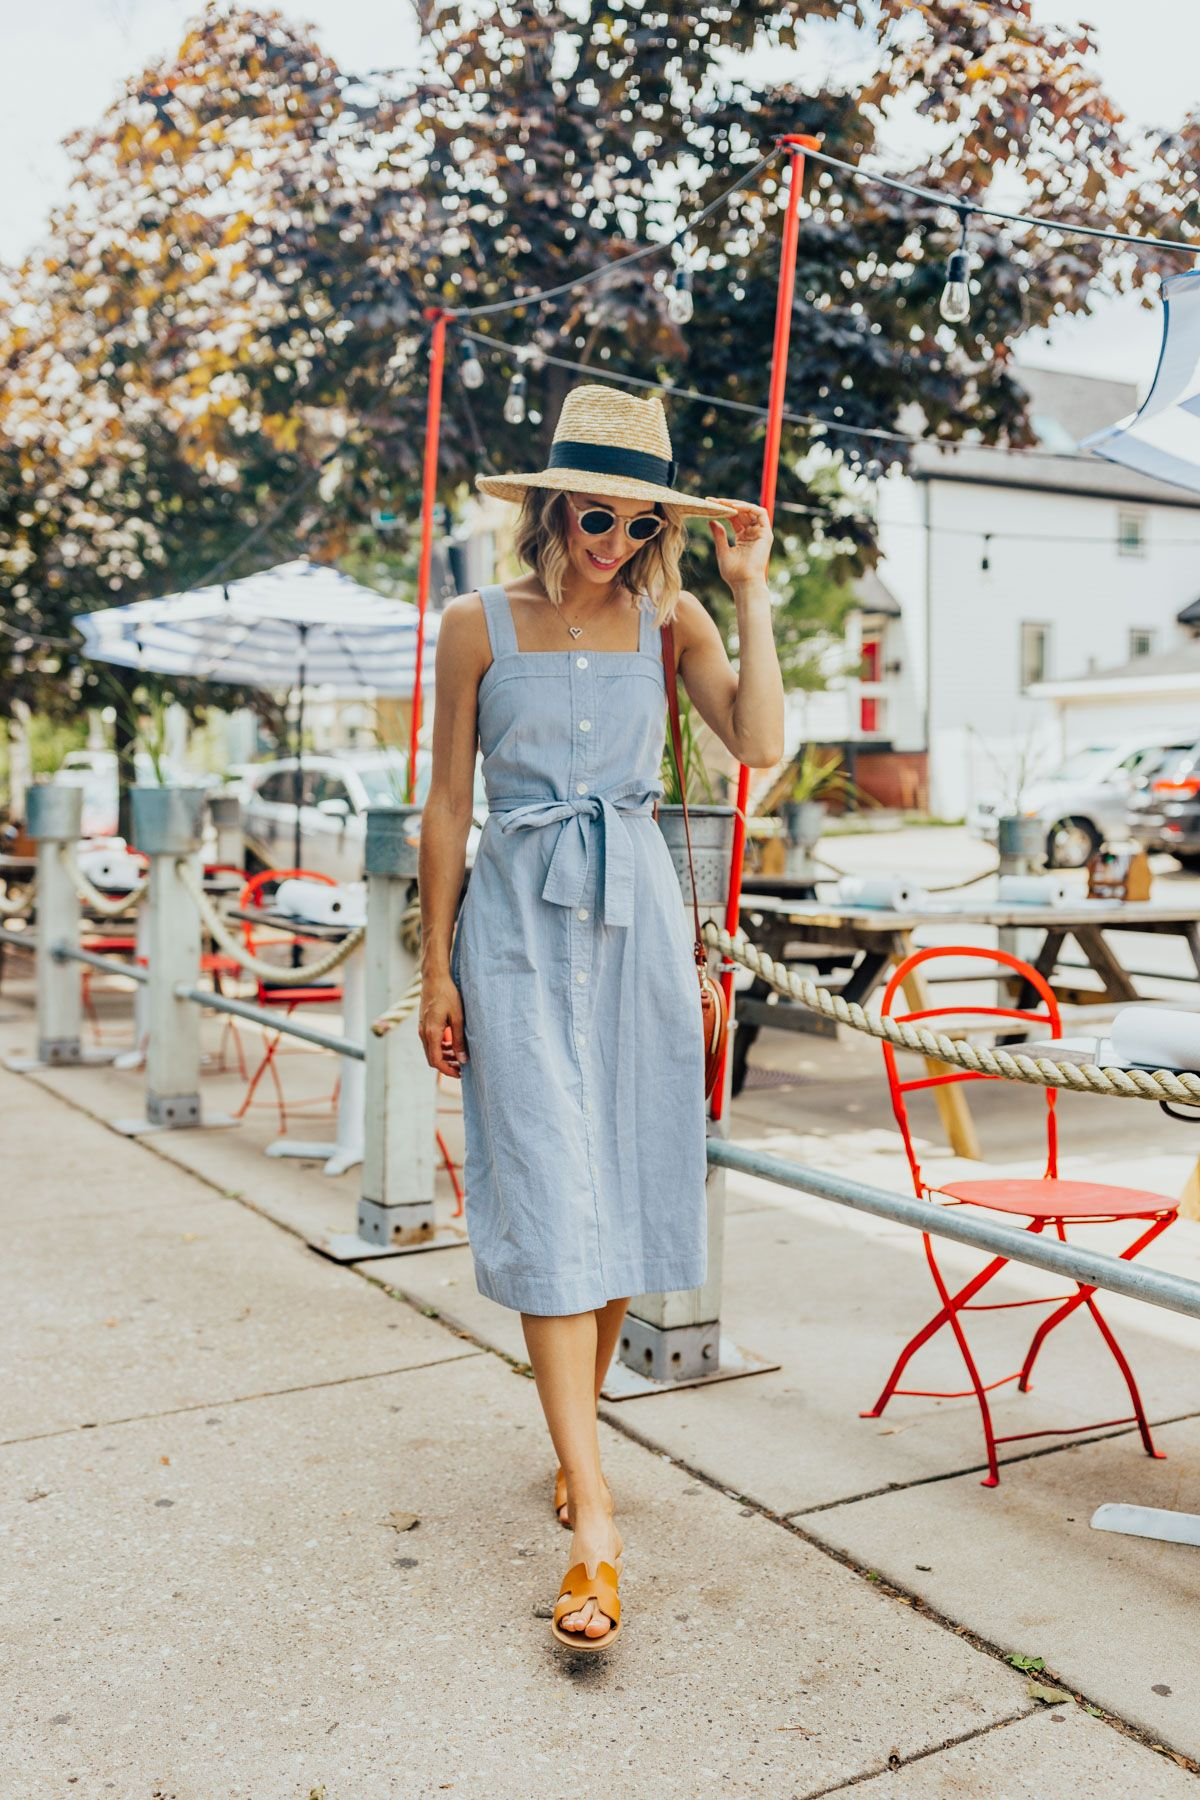 Are You Accidentally Sabotaging Your Life Summer Dress Outfits Chic Summer Dresses Summer Dresses [ 1800 x 1200 Pixel ]